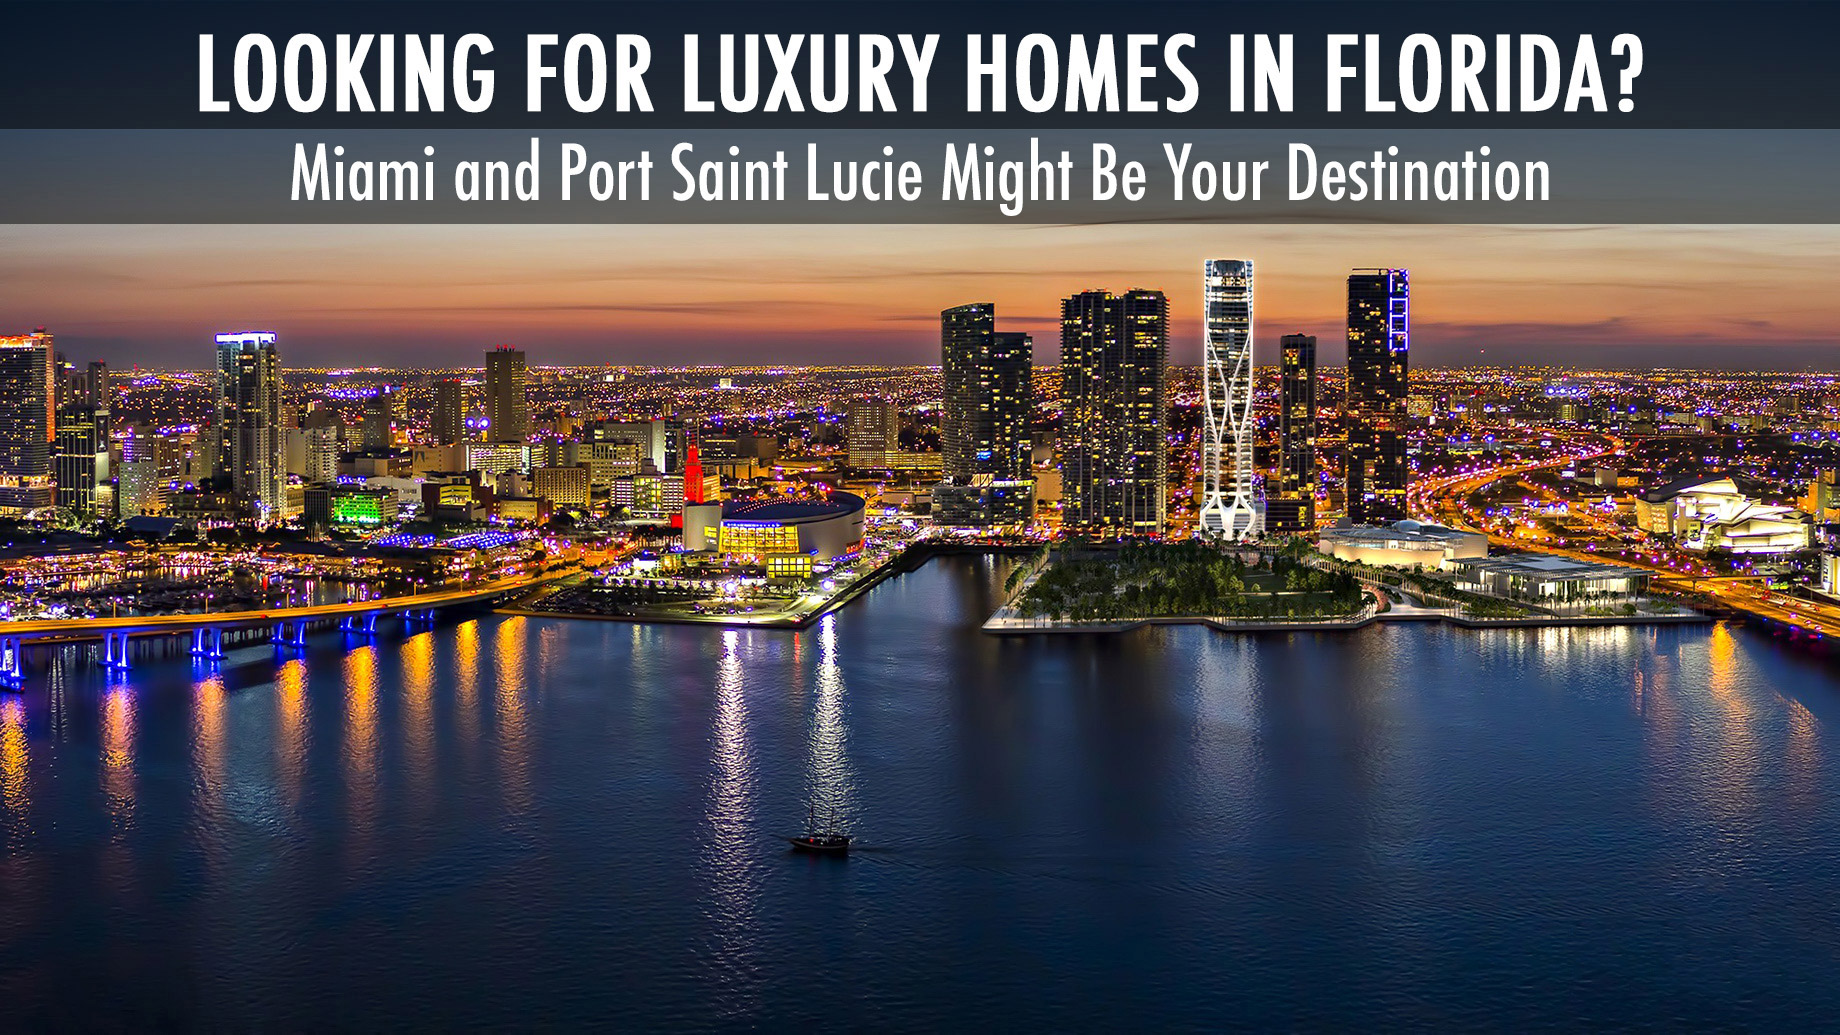 Looking For Luxury Homes in Florida? - Miami and Port Saint Lucie Might Be Your Destination